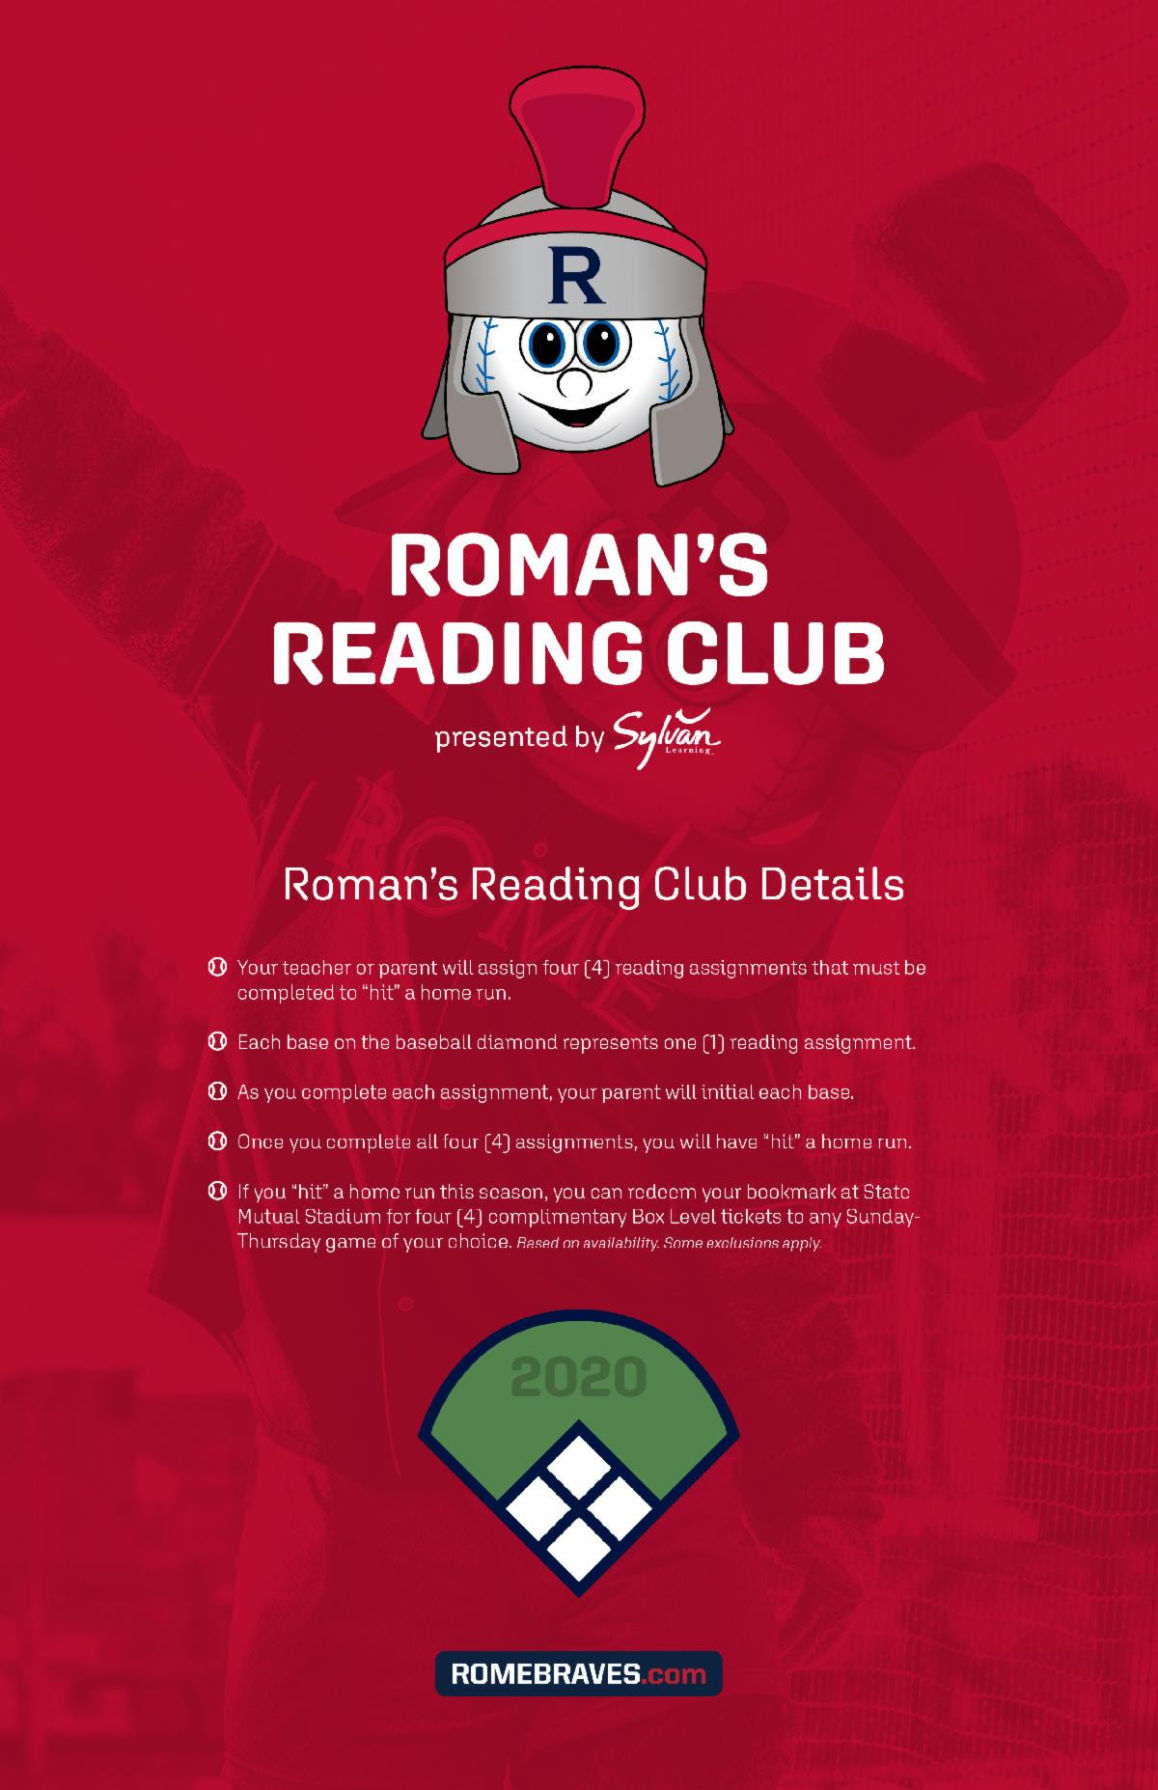 Rome Braves reading club now available online